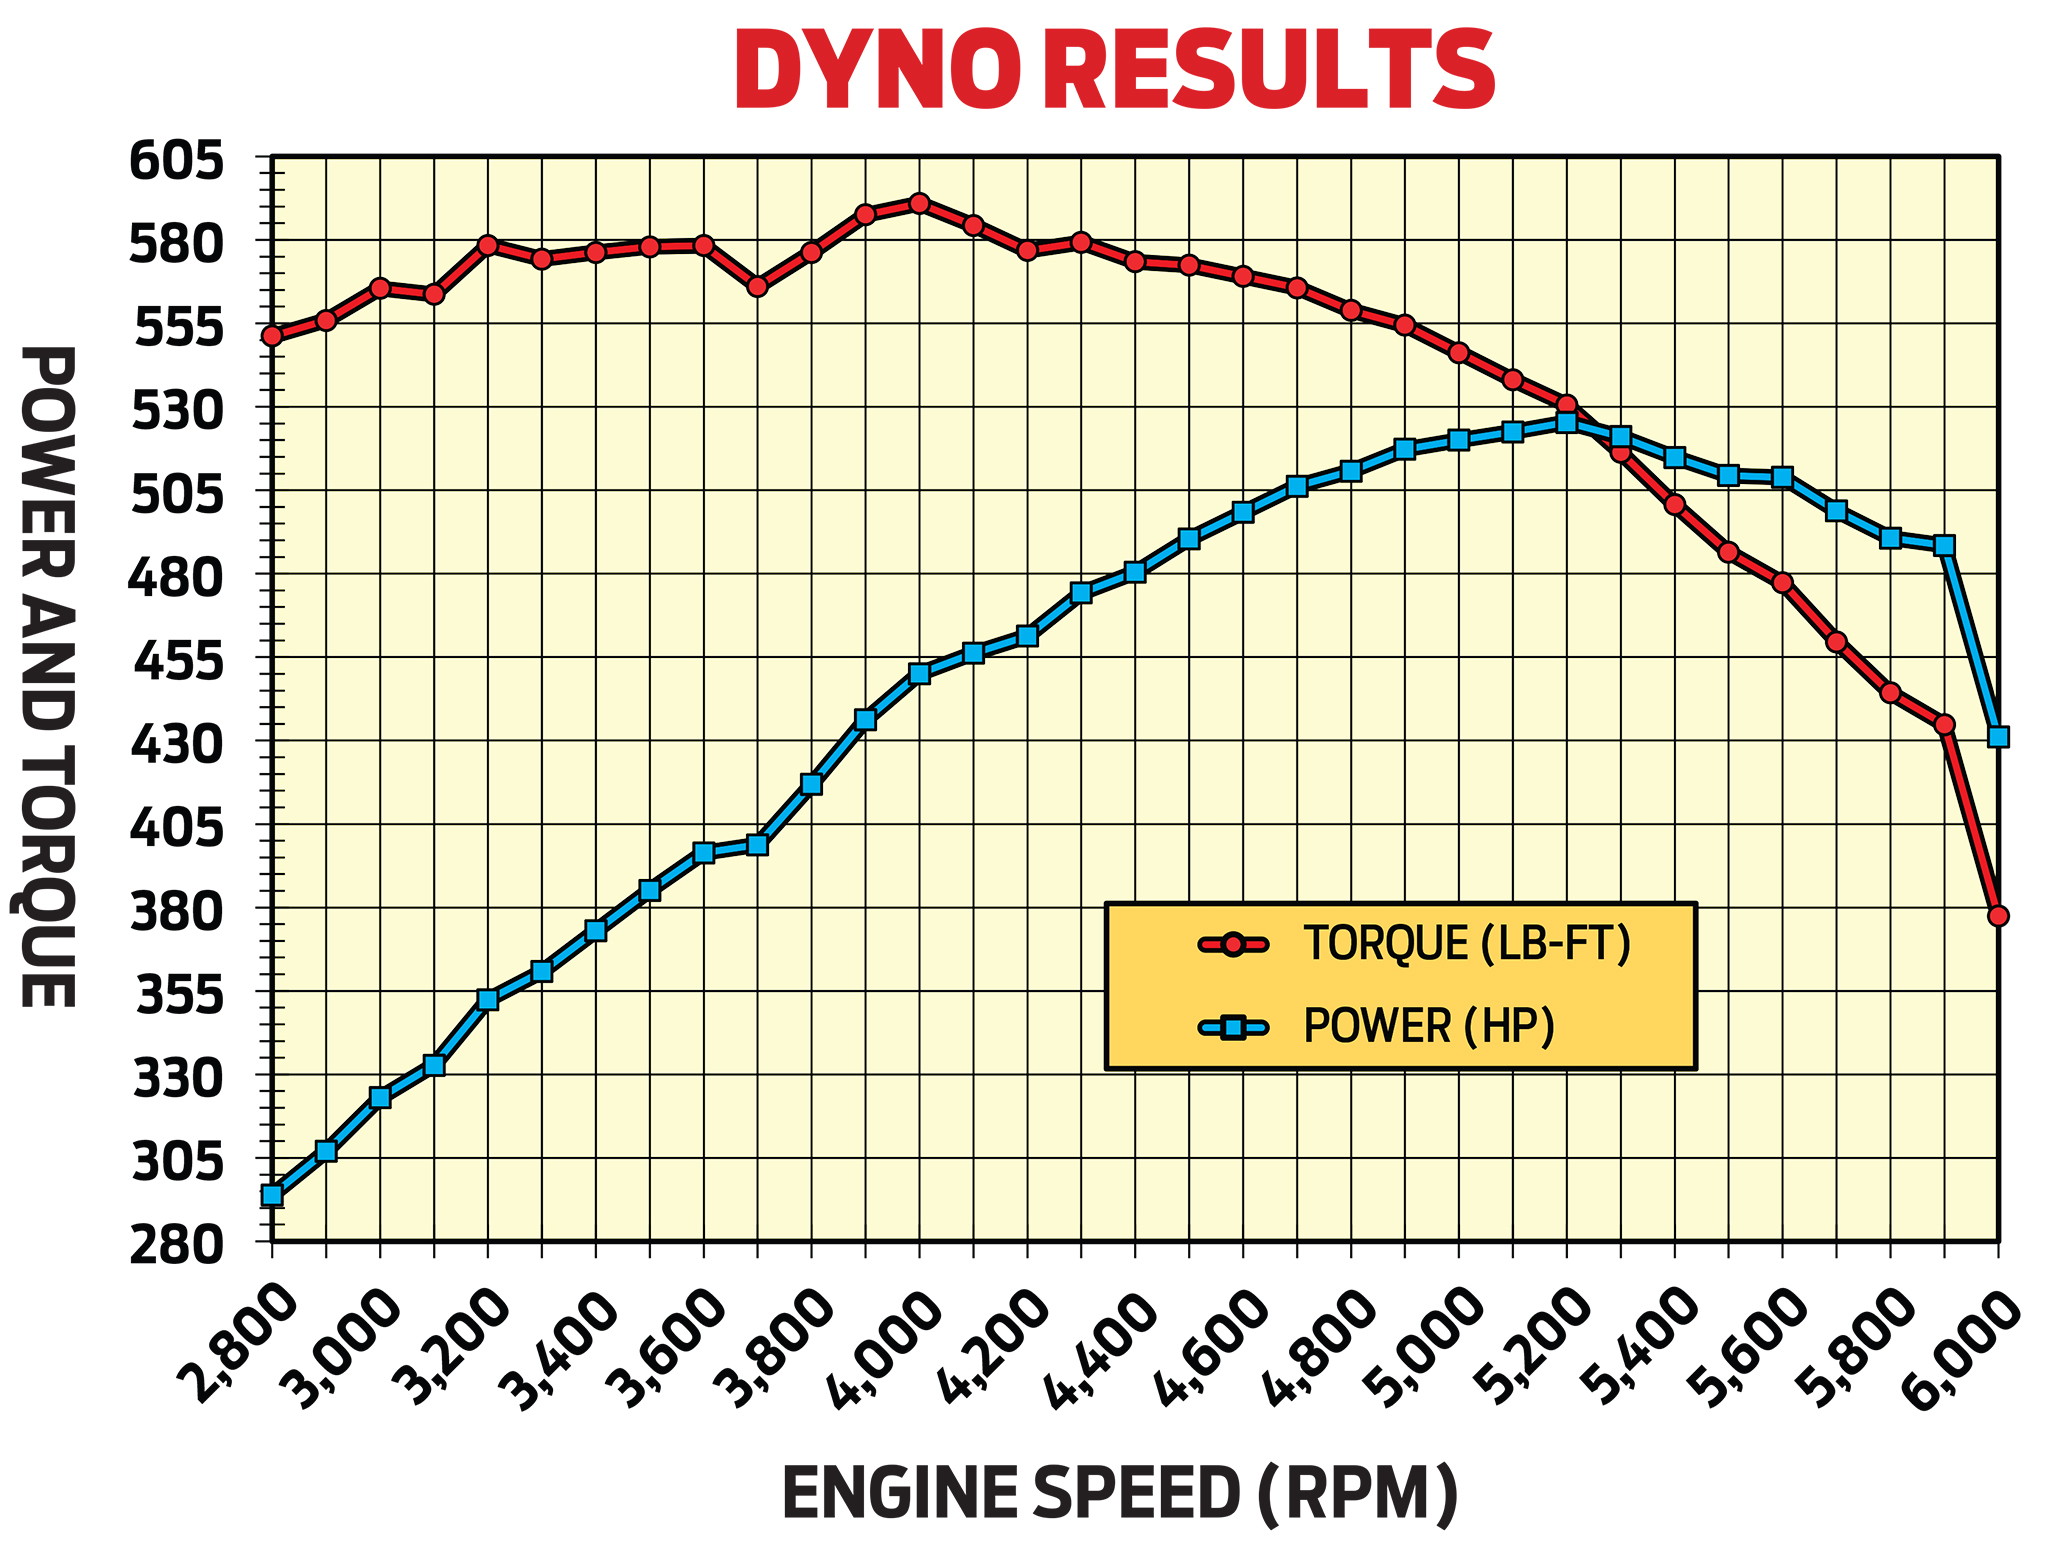 In preliminary tests on Advanced Engine Concepts engine dyno, Rob's 481ci Olds peaked at 525.3 hp and 590.9 lb-ft of torque. Average output from 2,800–6,000 was 447 hp and 542 lb-ft. It made over 500 lb-ft from 2,800 rpm (the lowest point tested) through 5,400 rpm, and more than 500 hp from 4,800 through 5,600.